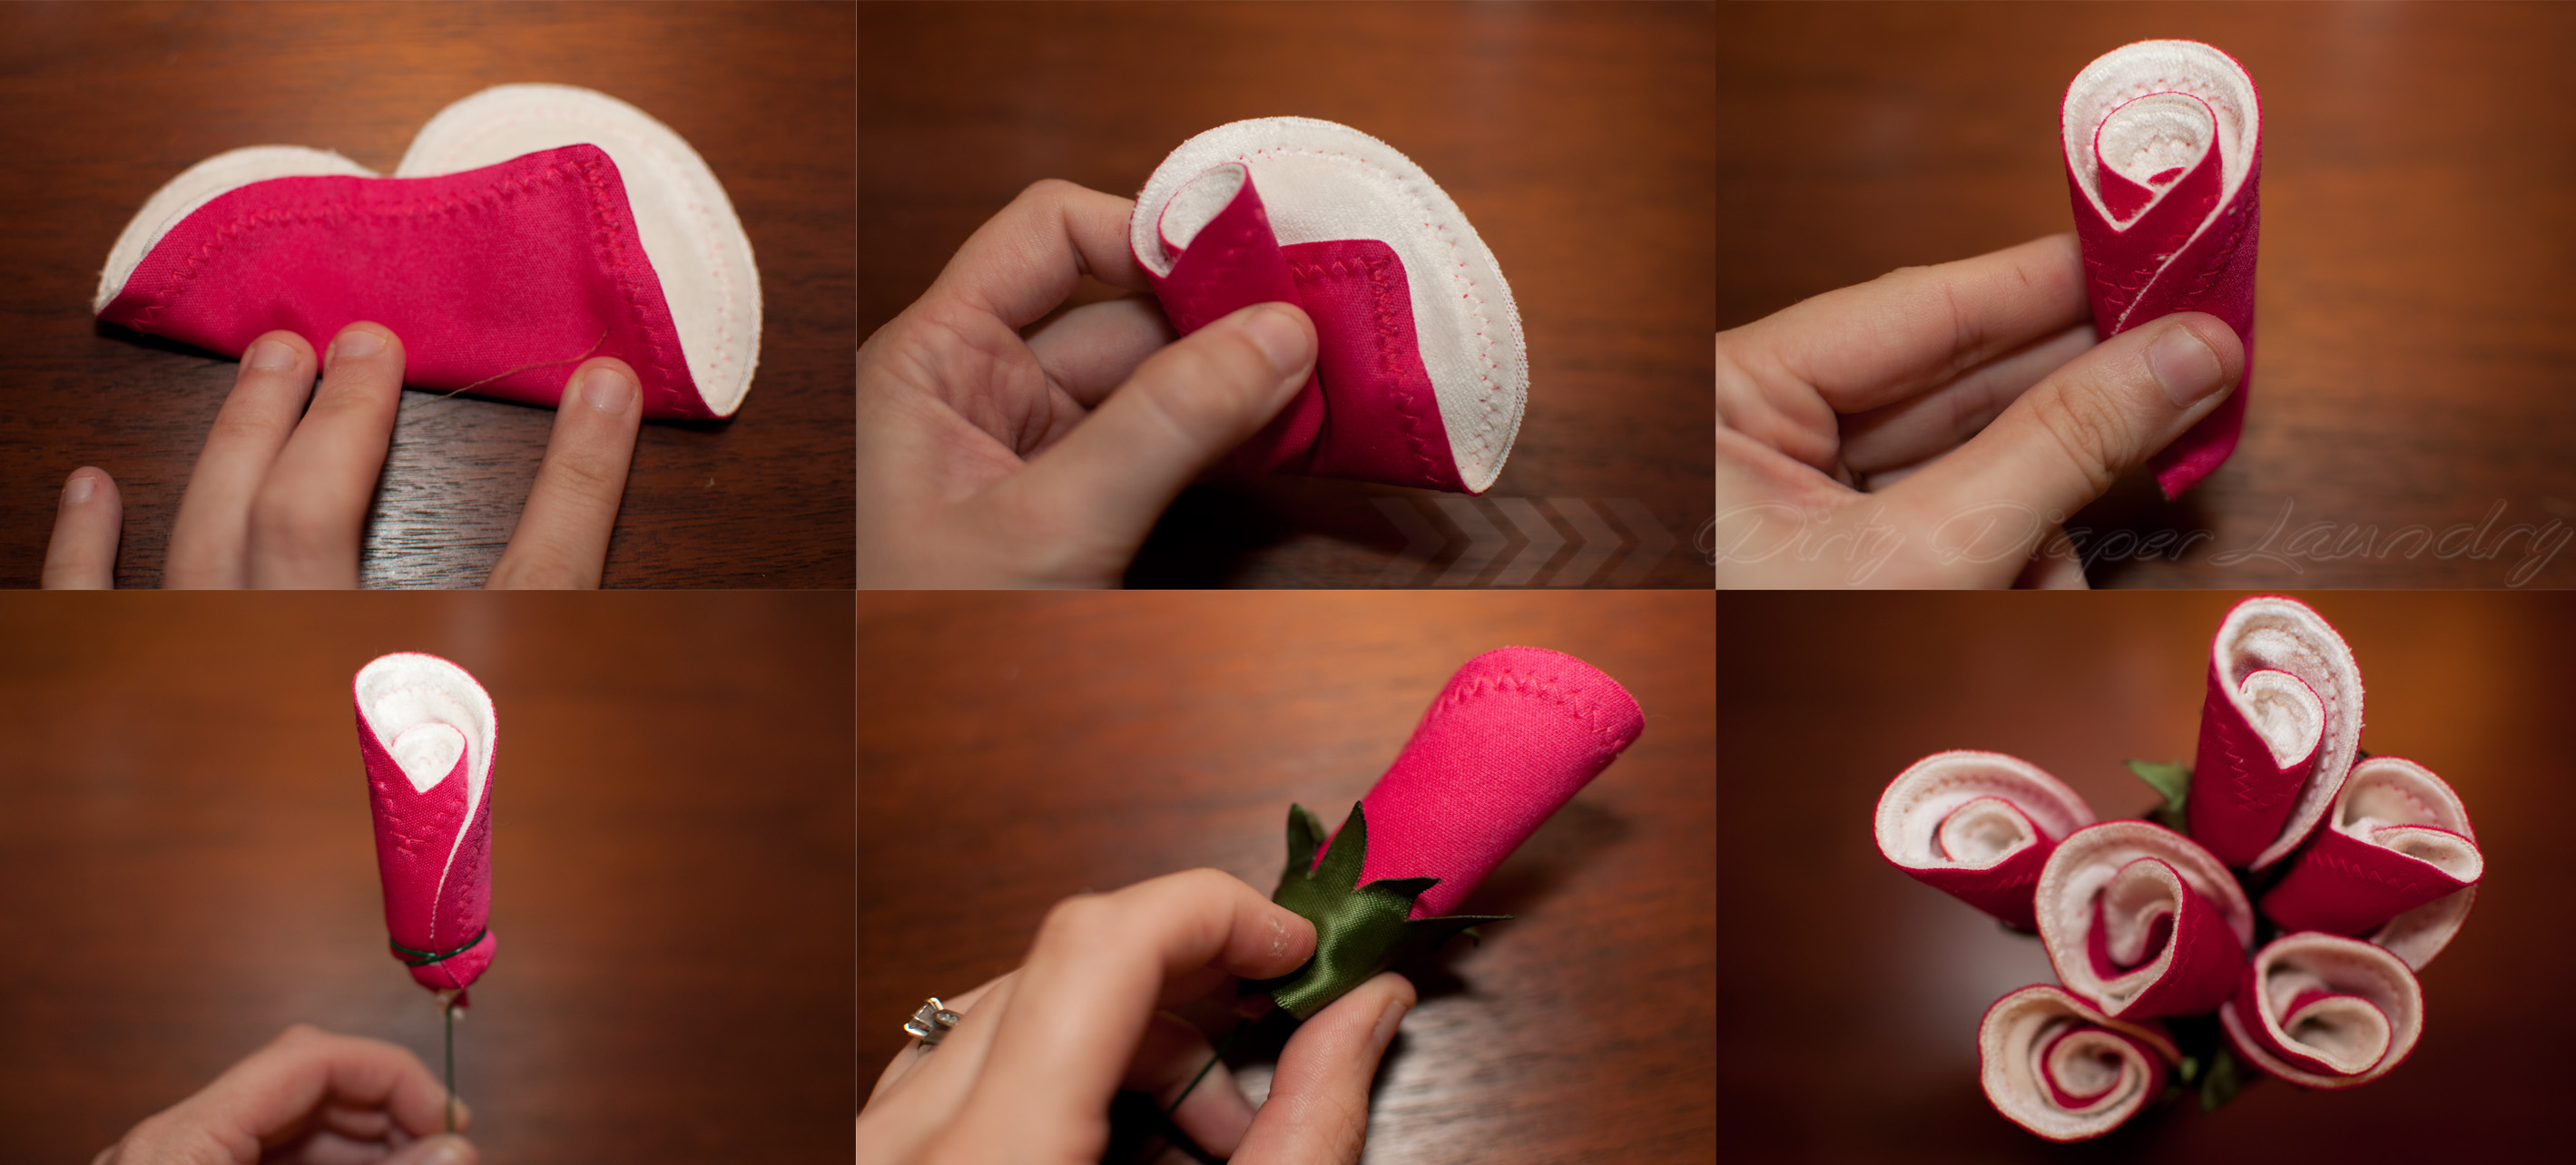 make a breast pad rose bud bouquet